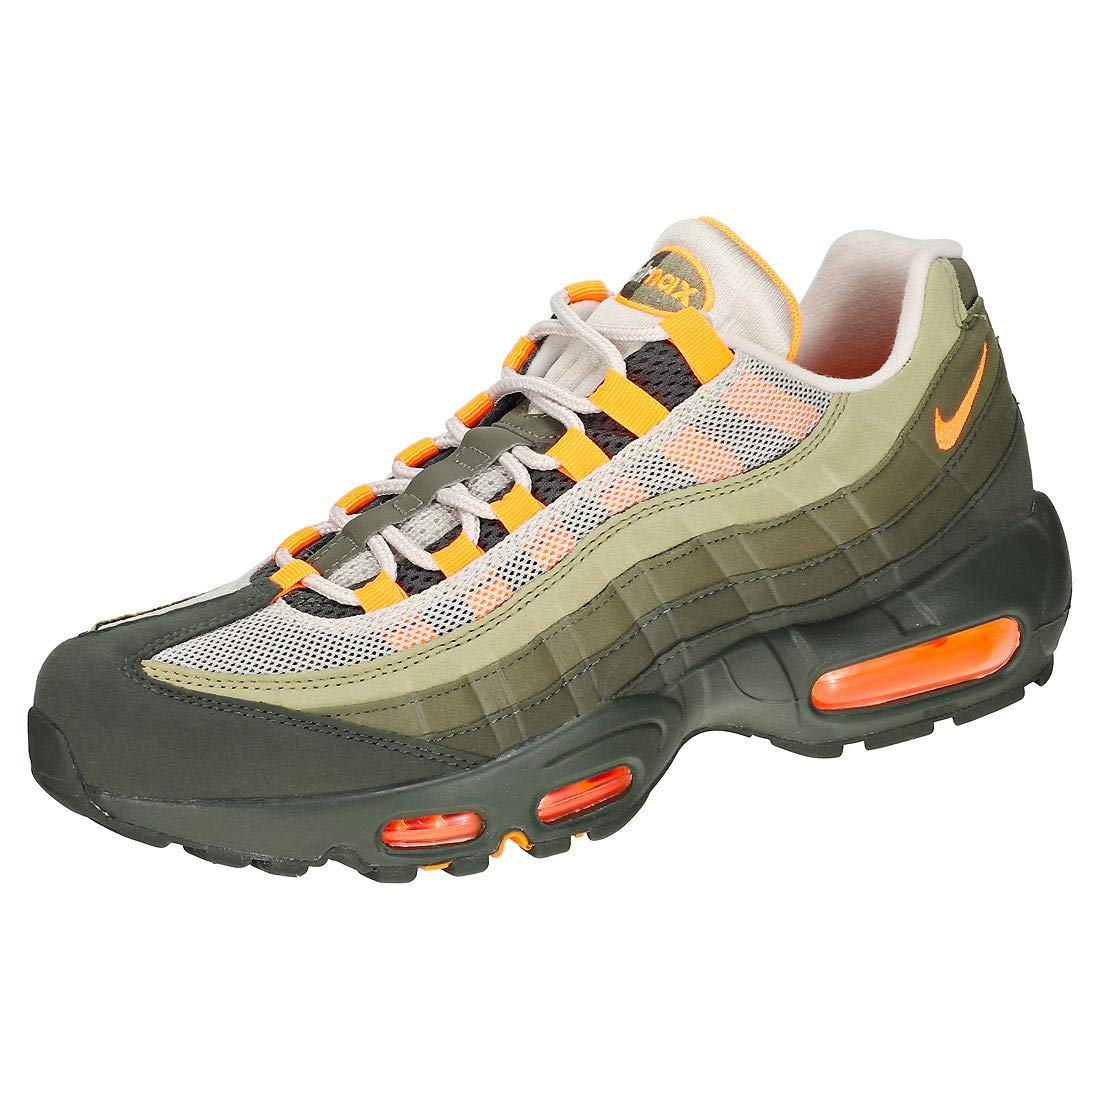 good service big discount best deals on Nike Air Max 95